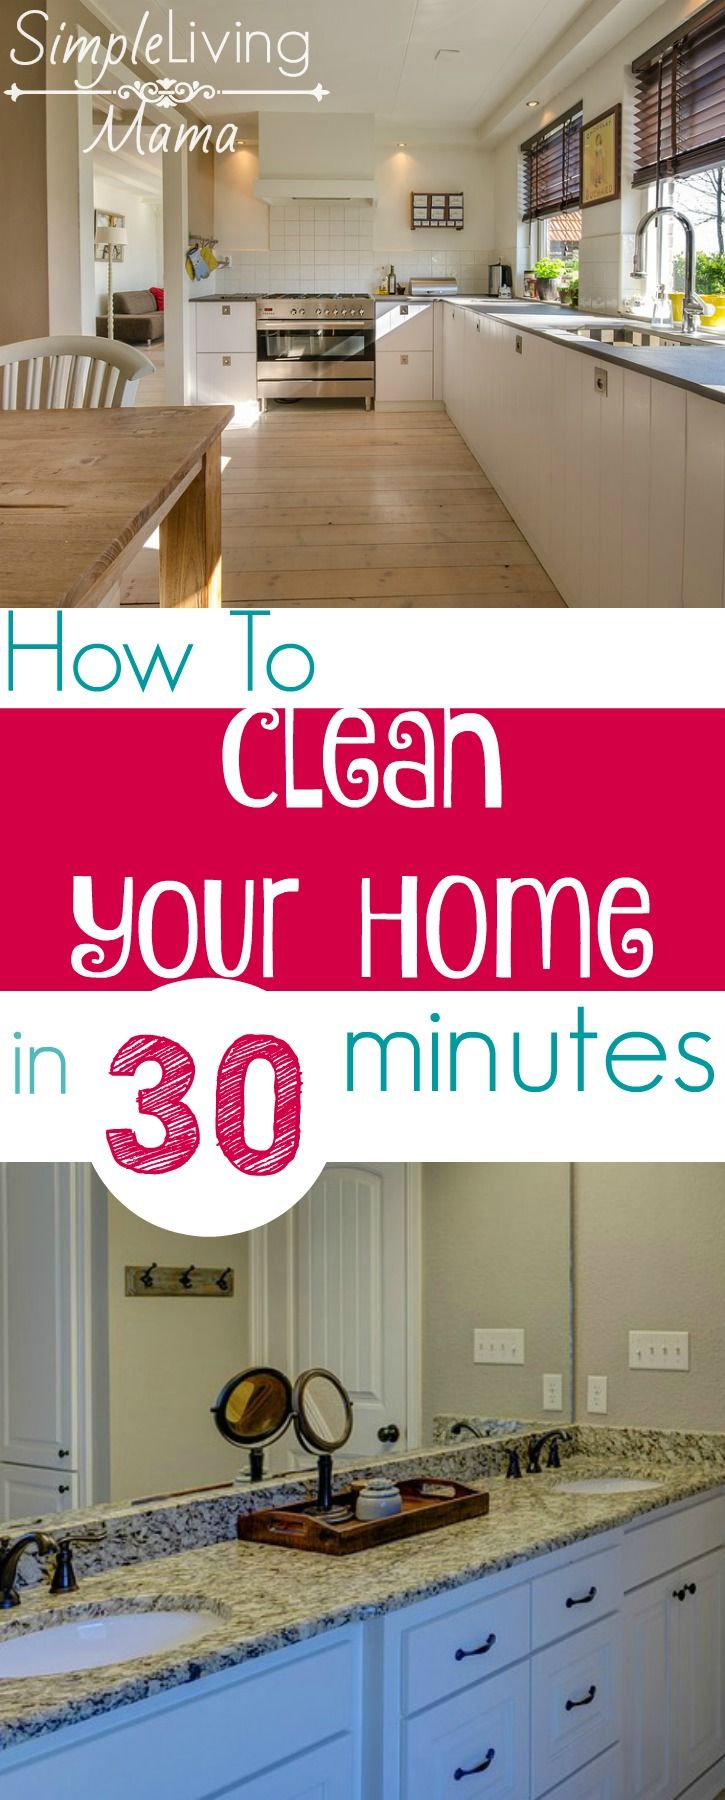 How to clean your living room in 5 minutes - Clean Your Home In 30 Minutes With The 30 Minute Tidy